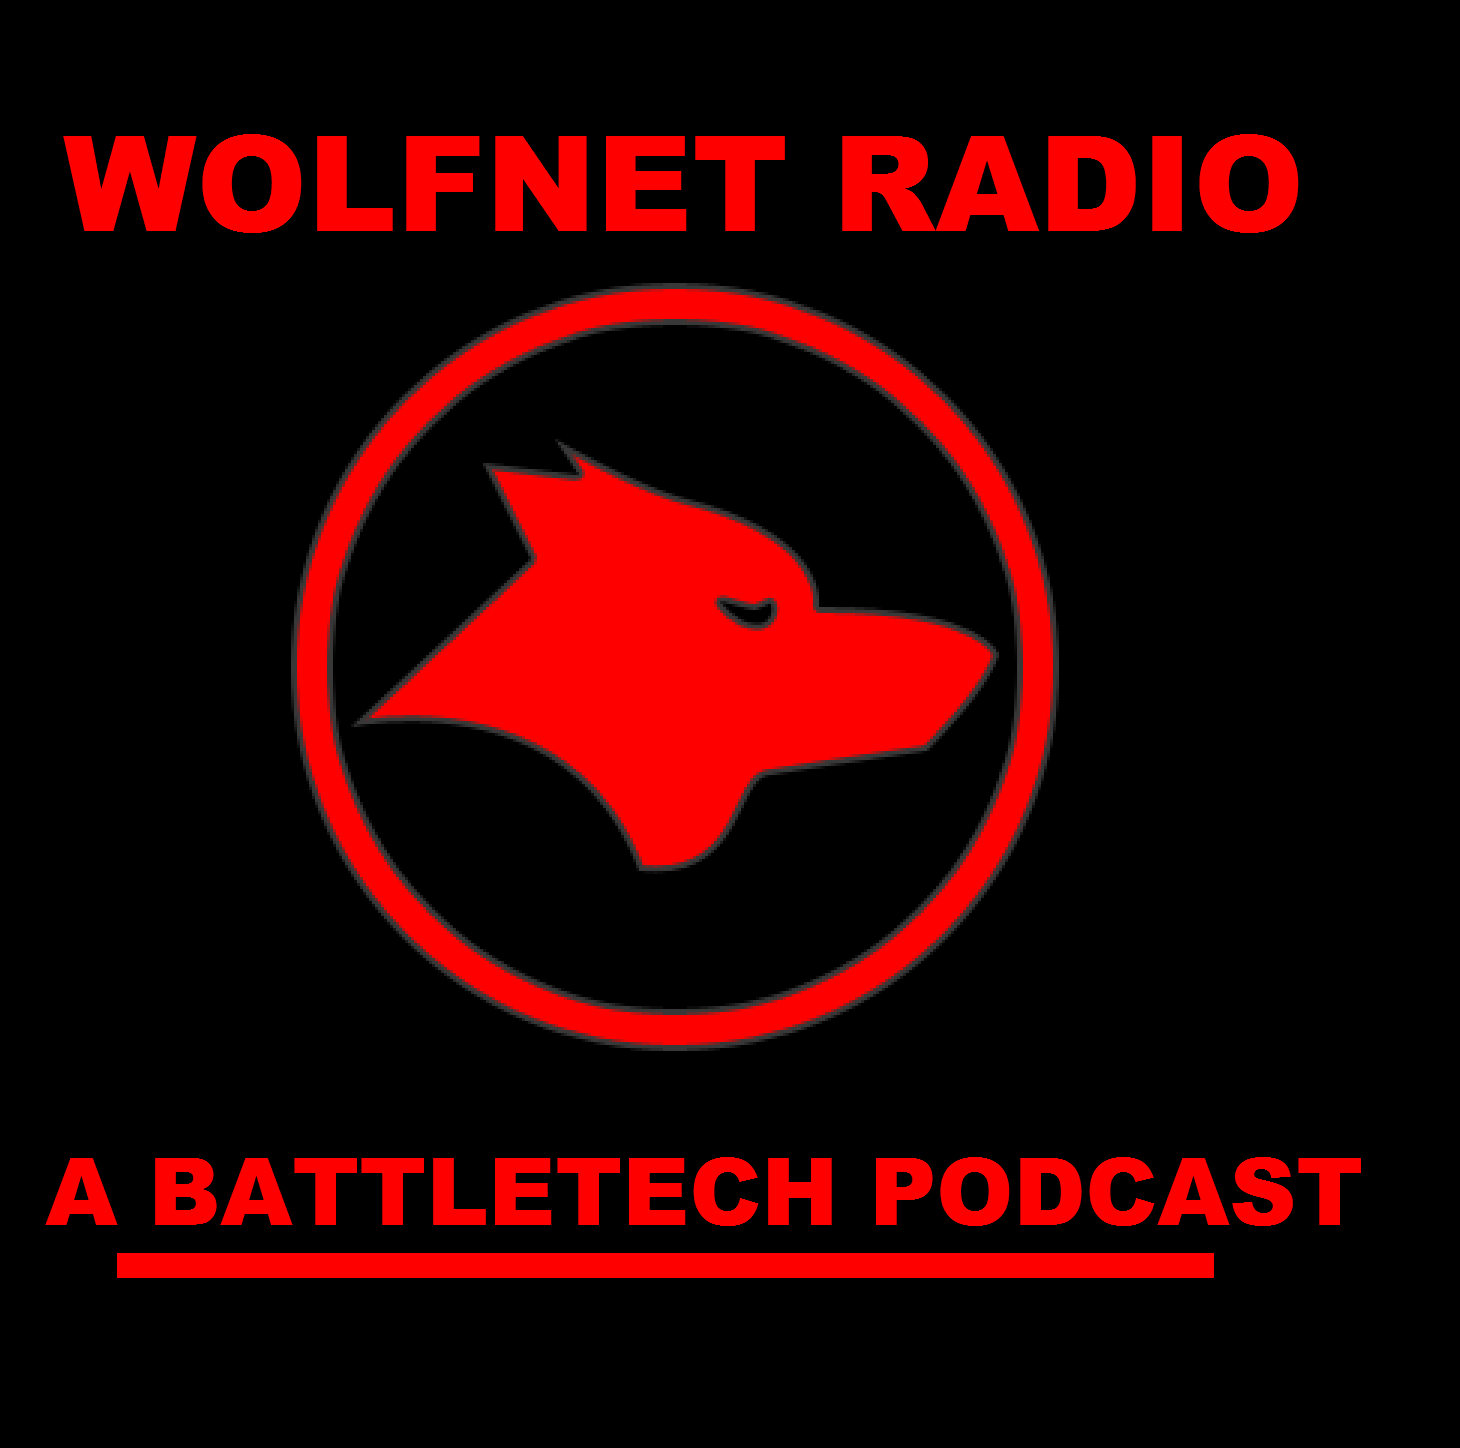 WolfNet Radio: A Battletech Podcast